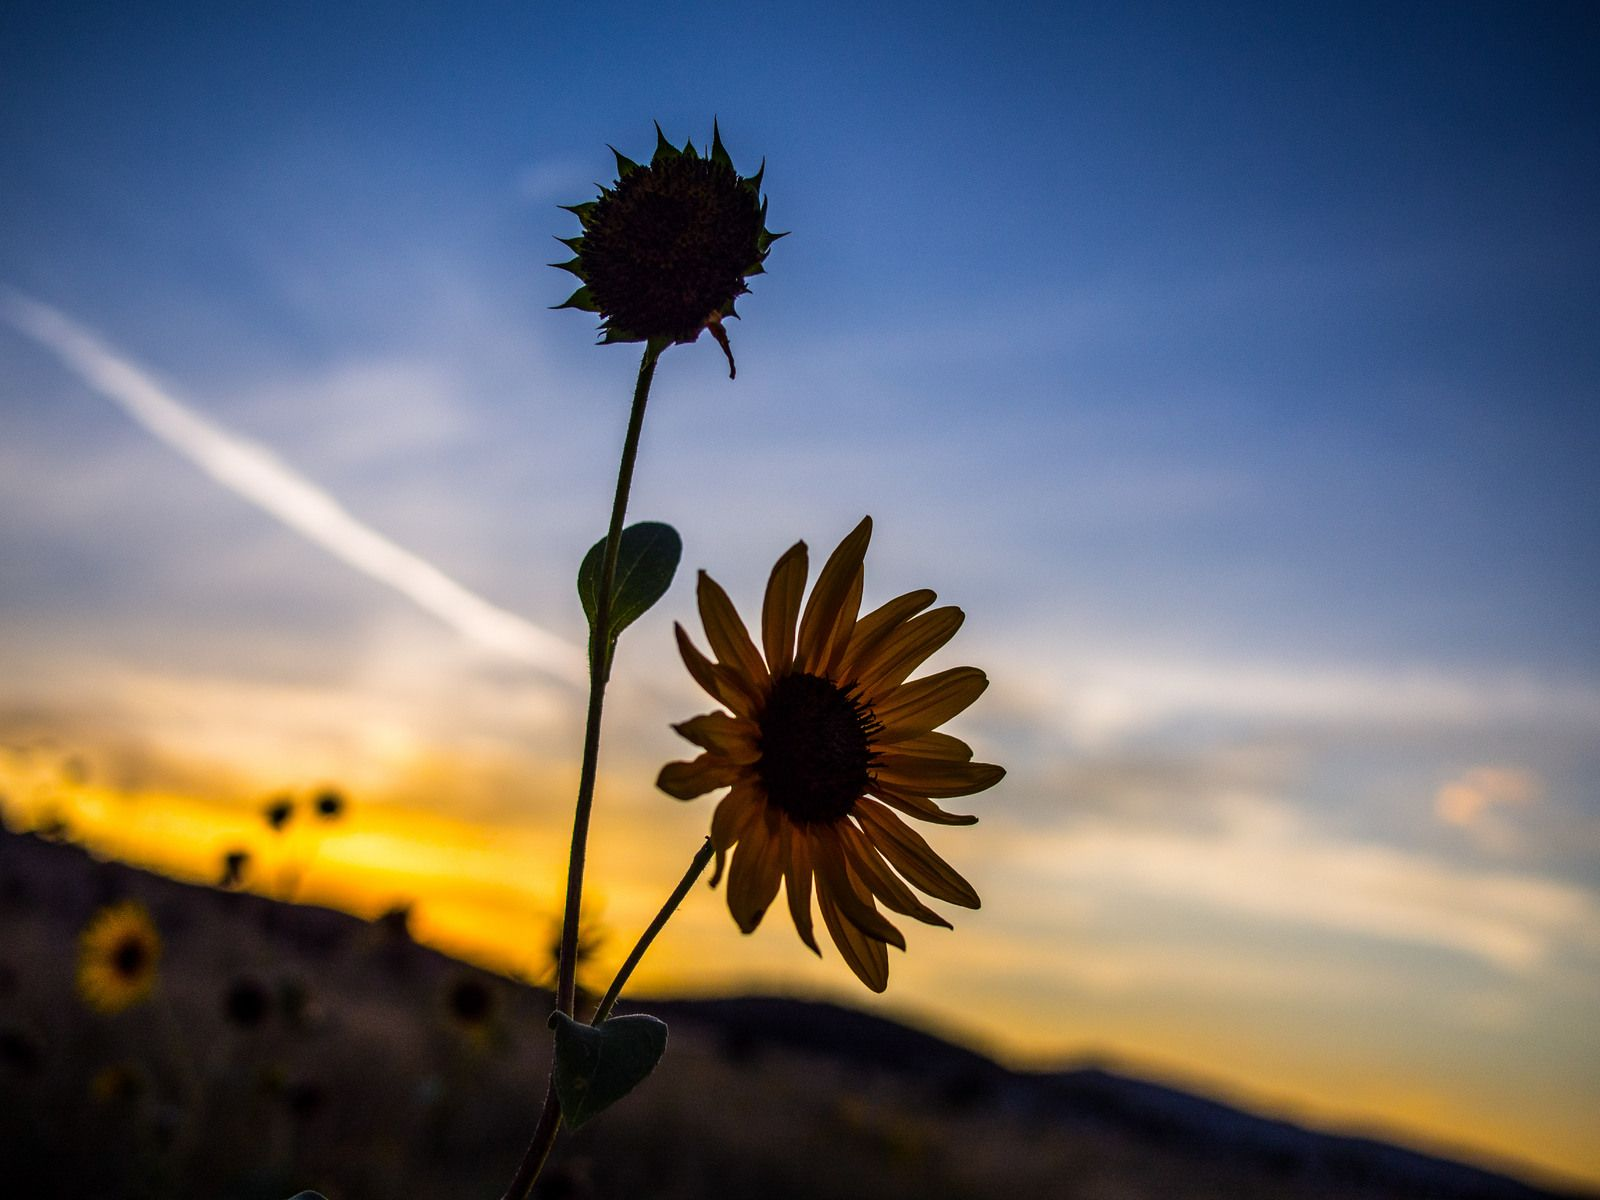 some sunflowers at sunset, Pocatello Idaho from west bench